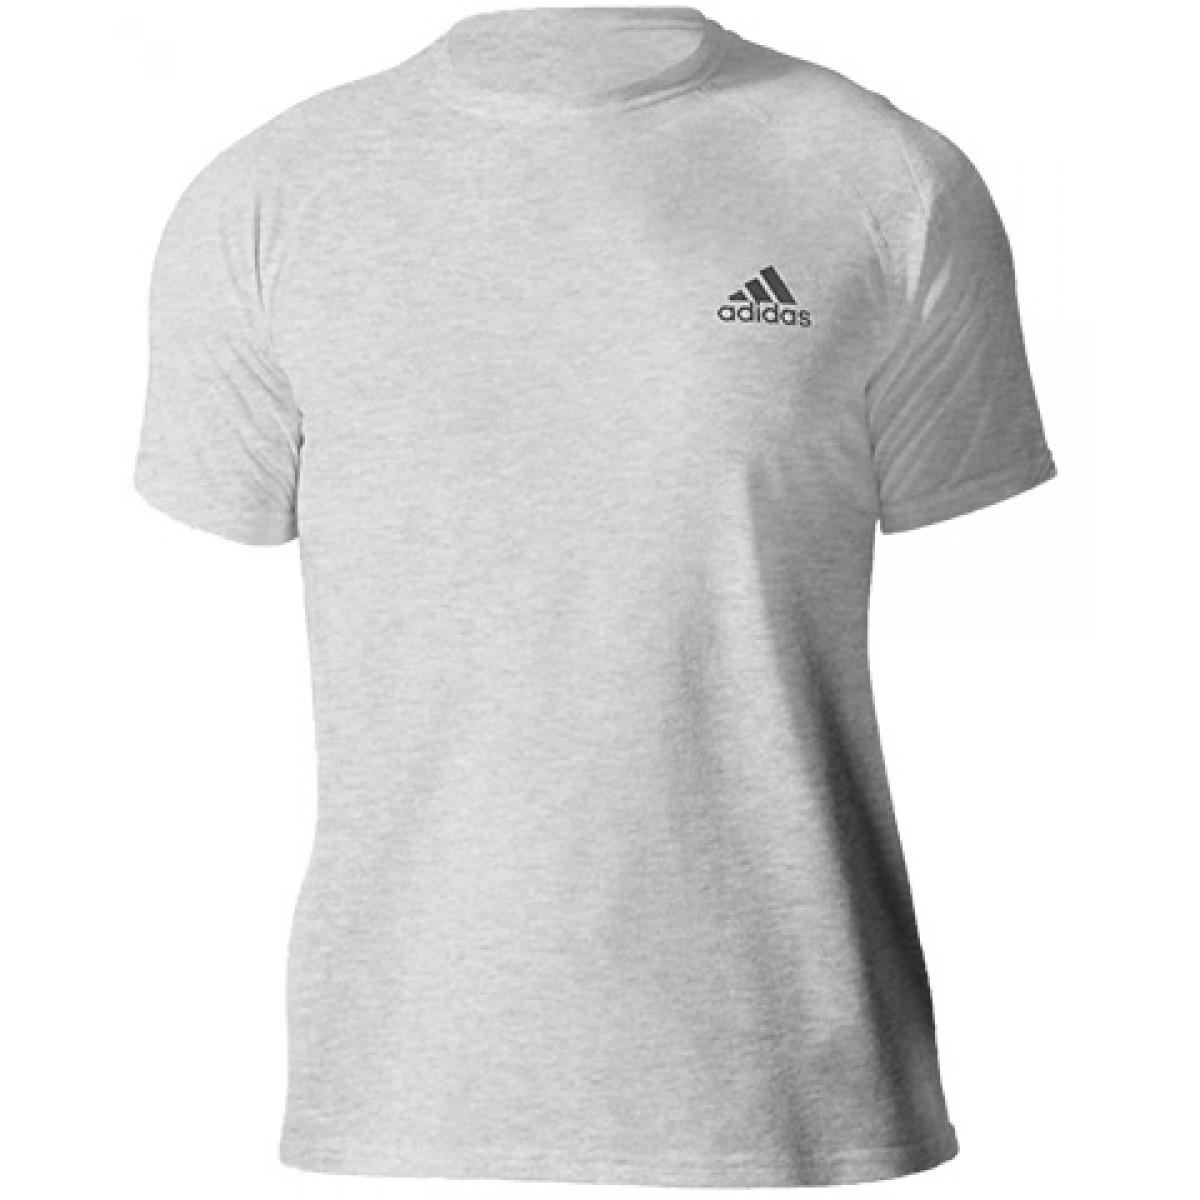 Adidas Embroidered Logo Essential Crew Neck T-shirt-Sports Grey-XS